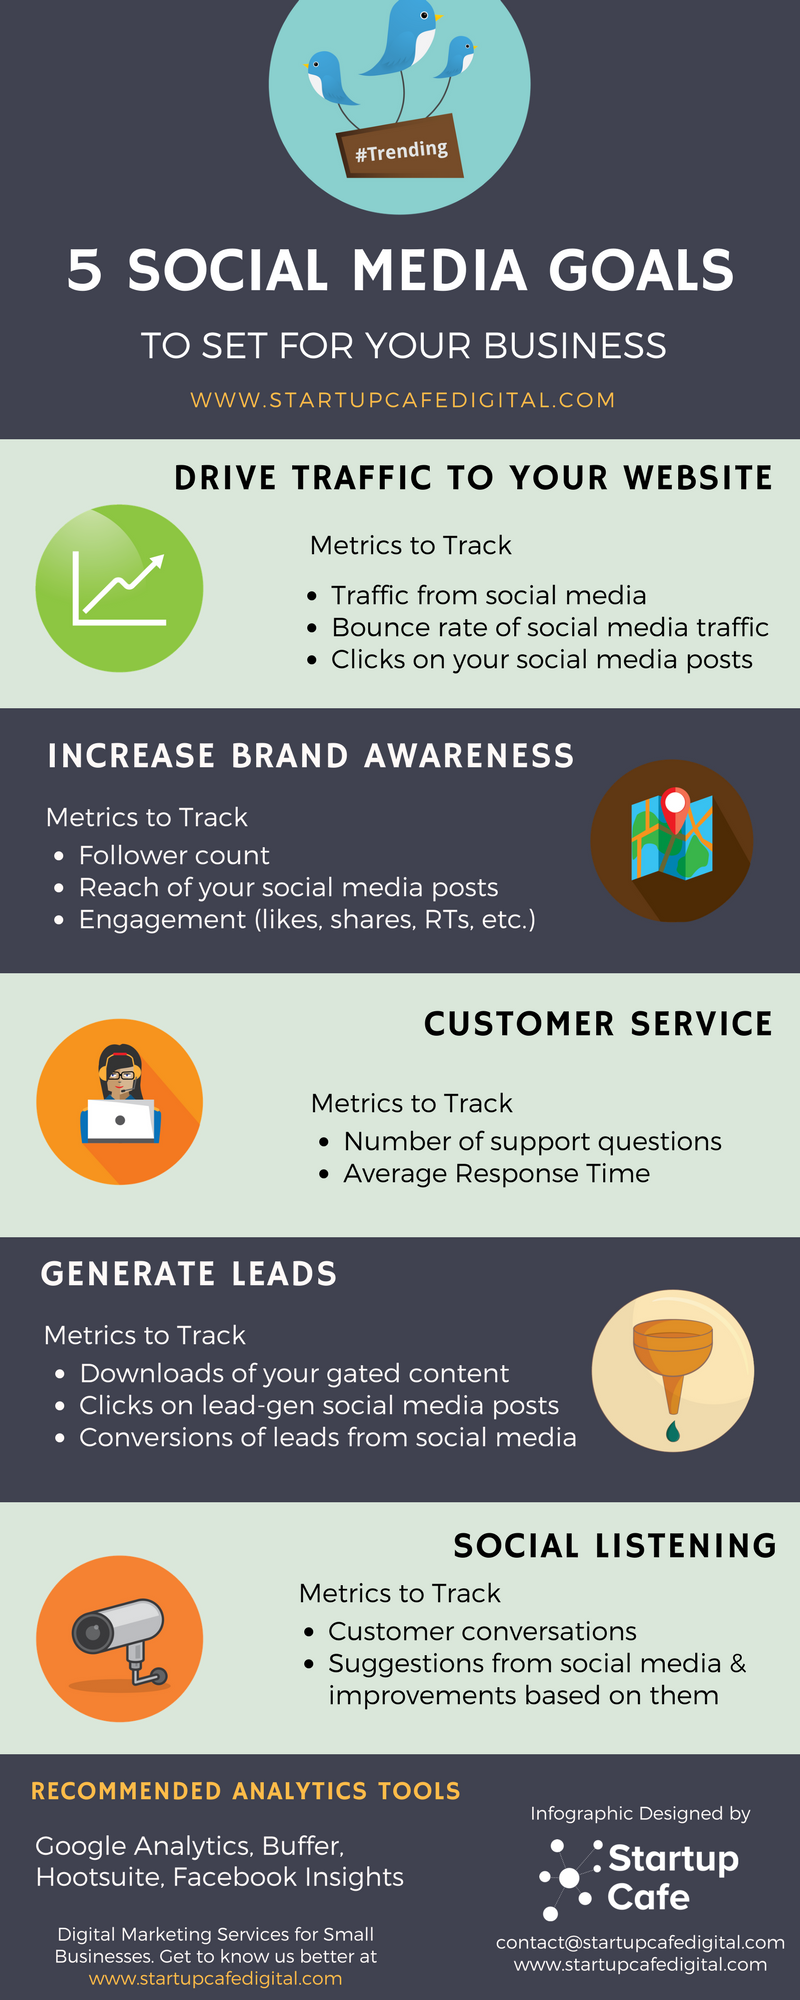 Social Media Goals to Set For Your Business Infographic